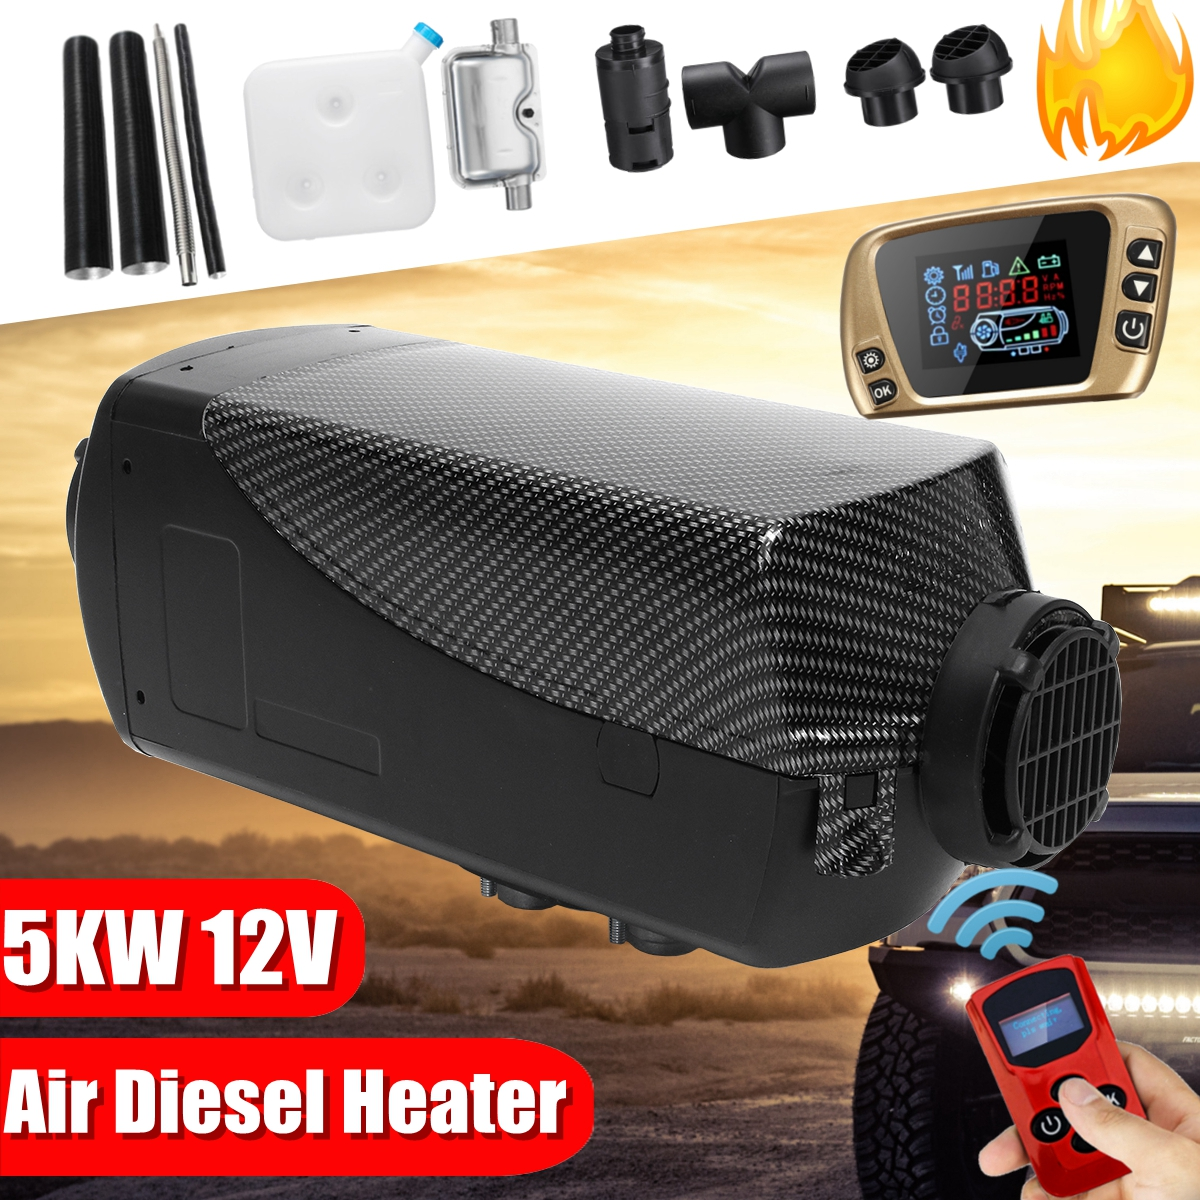 HCalory 5KW 12V Diesels Air Parking Heater Air Heating LCD Switch With Silencer And Remote Control For Boats Car Trailer Heater